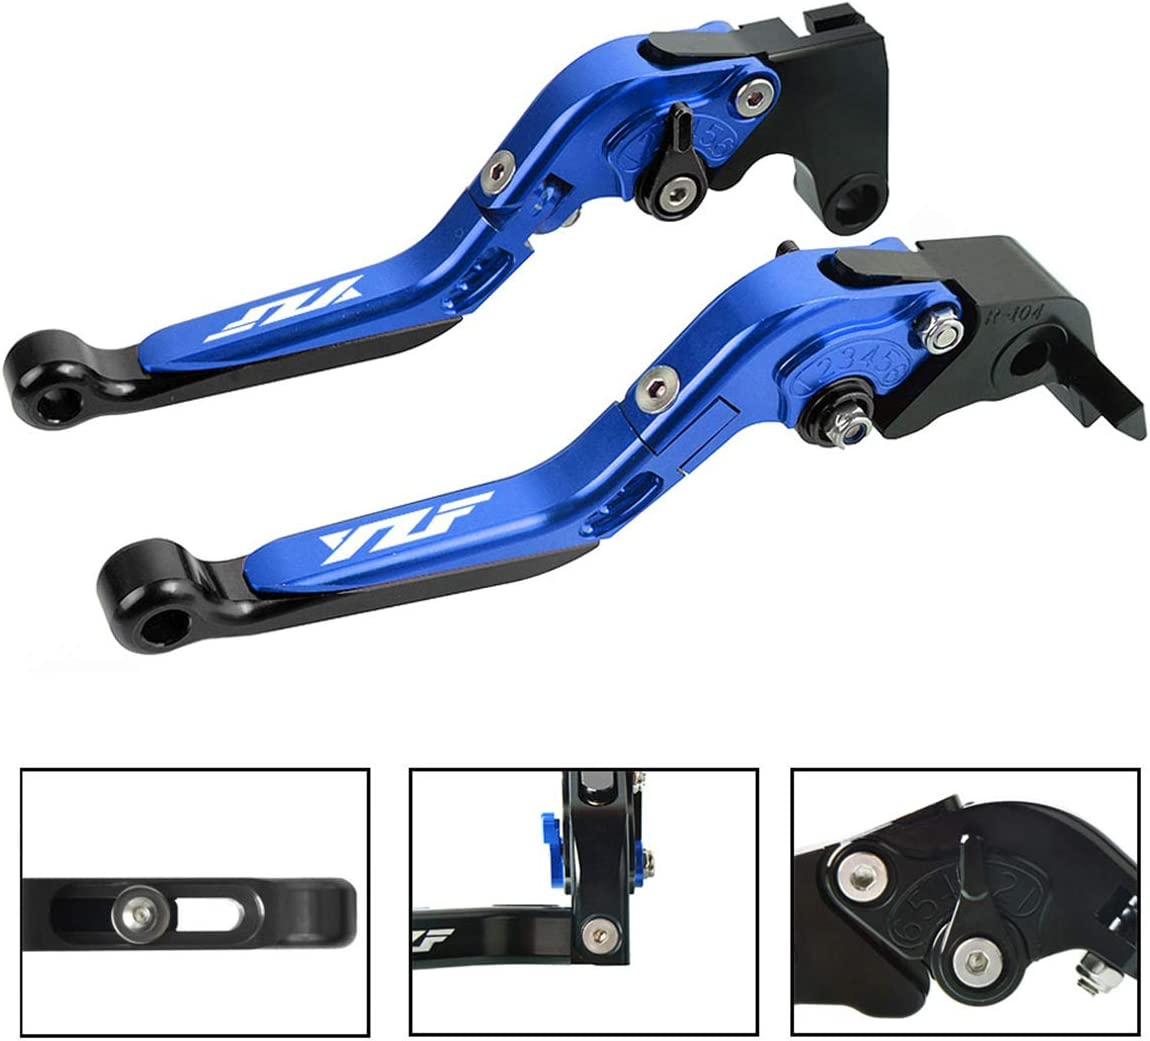 Brake /& Clutch Levers Set Foldable Extendable CNC For Yamaha YZF R1 2004-2014 For Yamaha YZF R6 2005-2016 Blue+Black